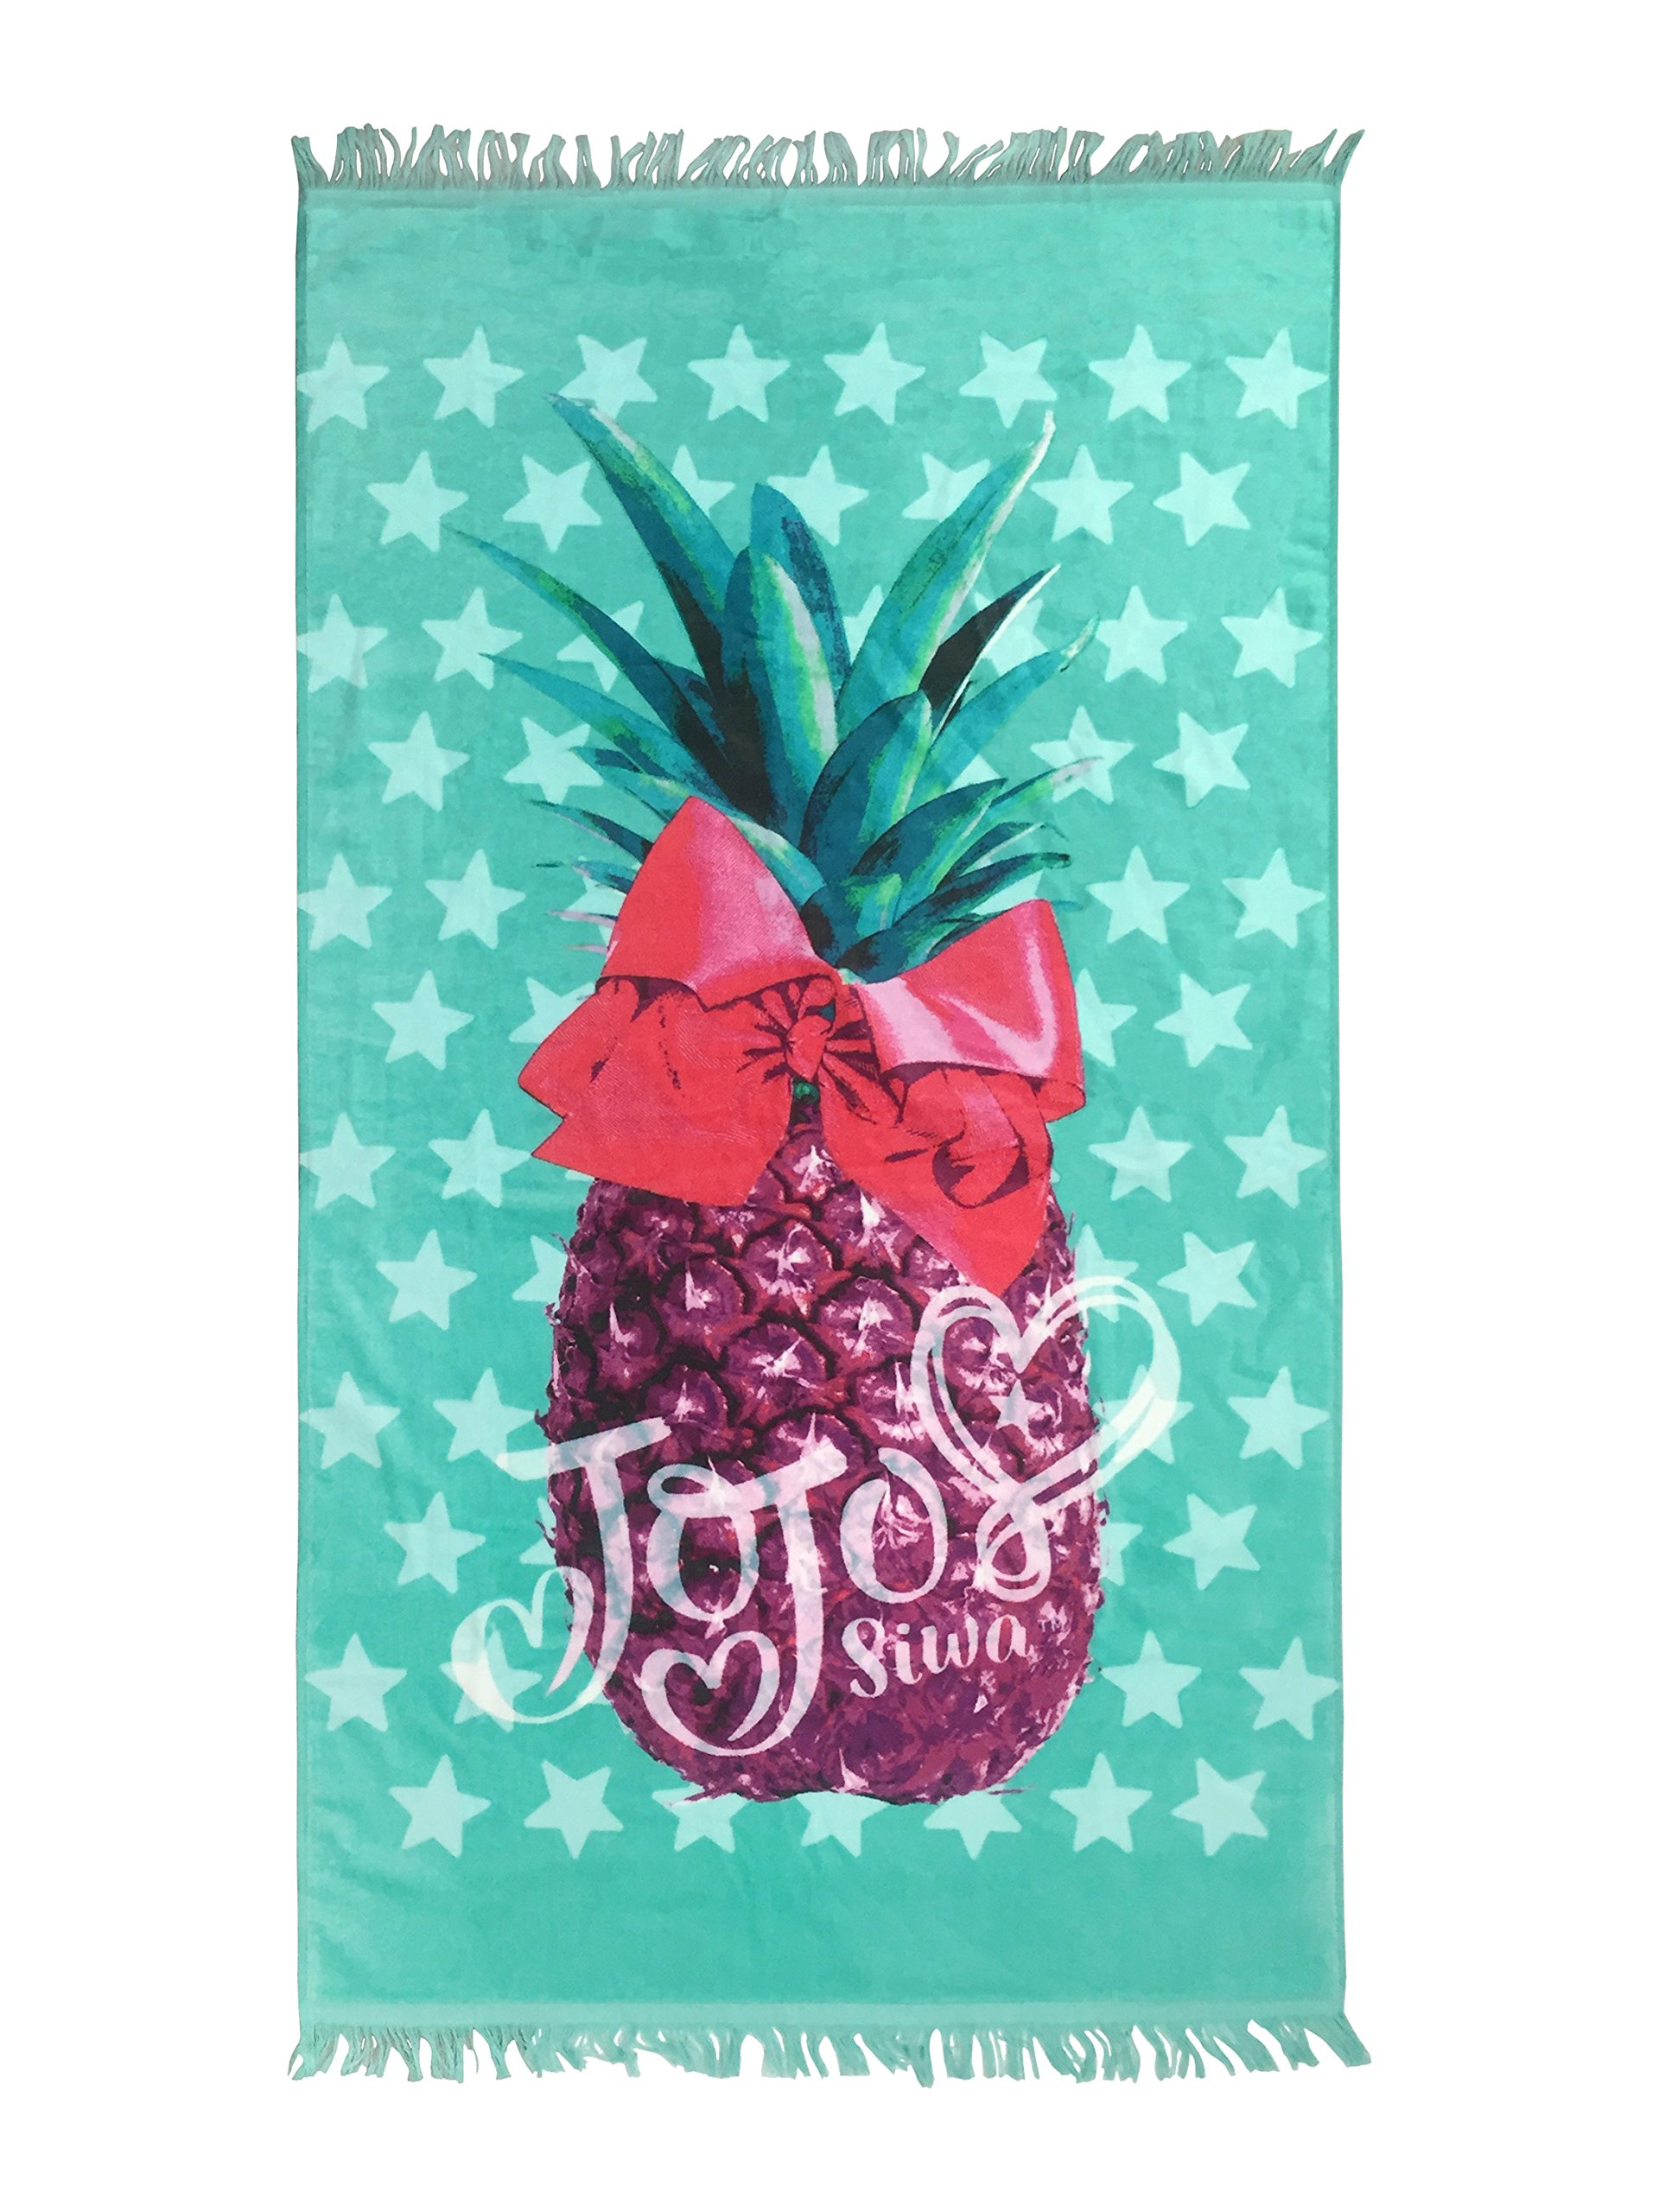 Nickelodeon JoJo Siwa Pineapple Teal Cotton Bath/Pool/Beach Towel (Official JoJo Siwa Product)